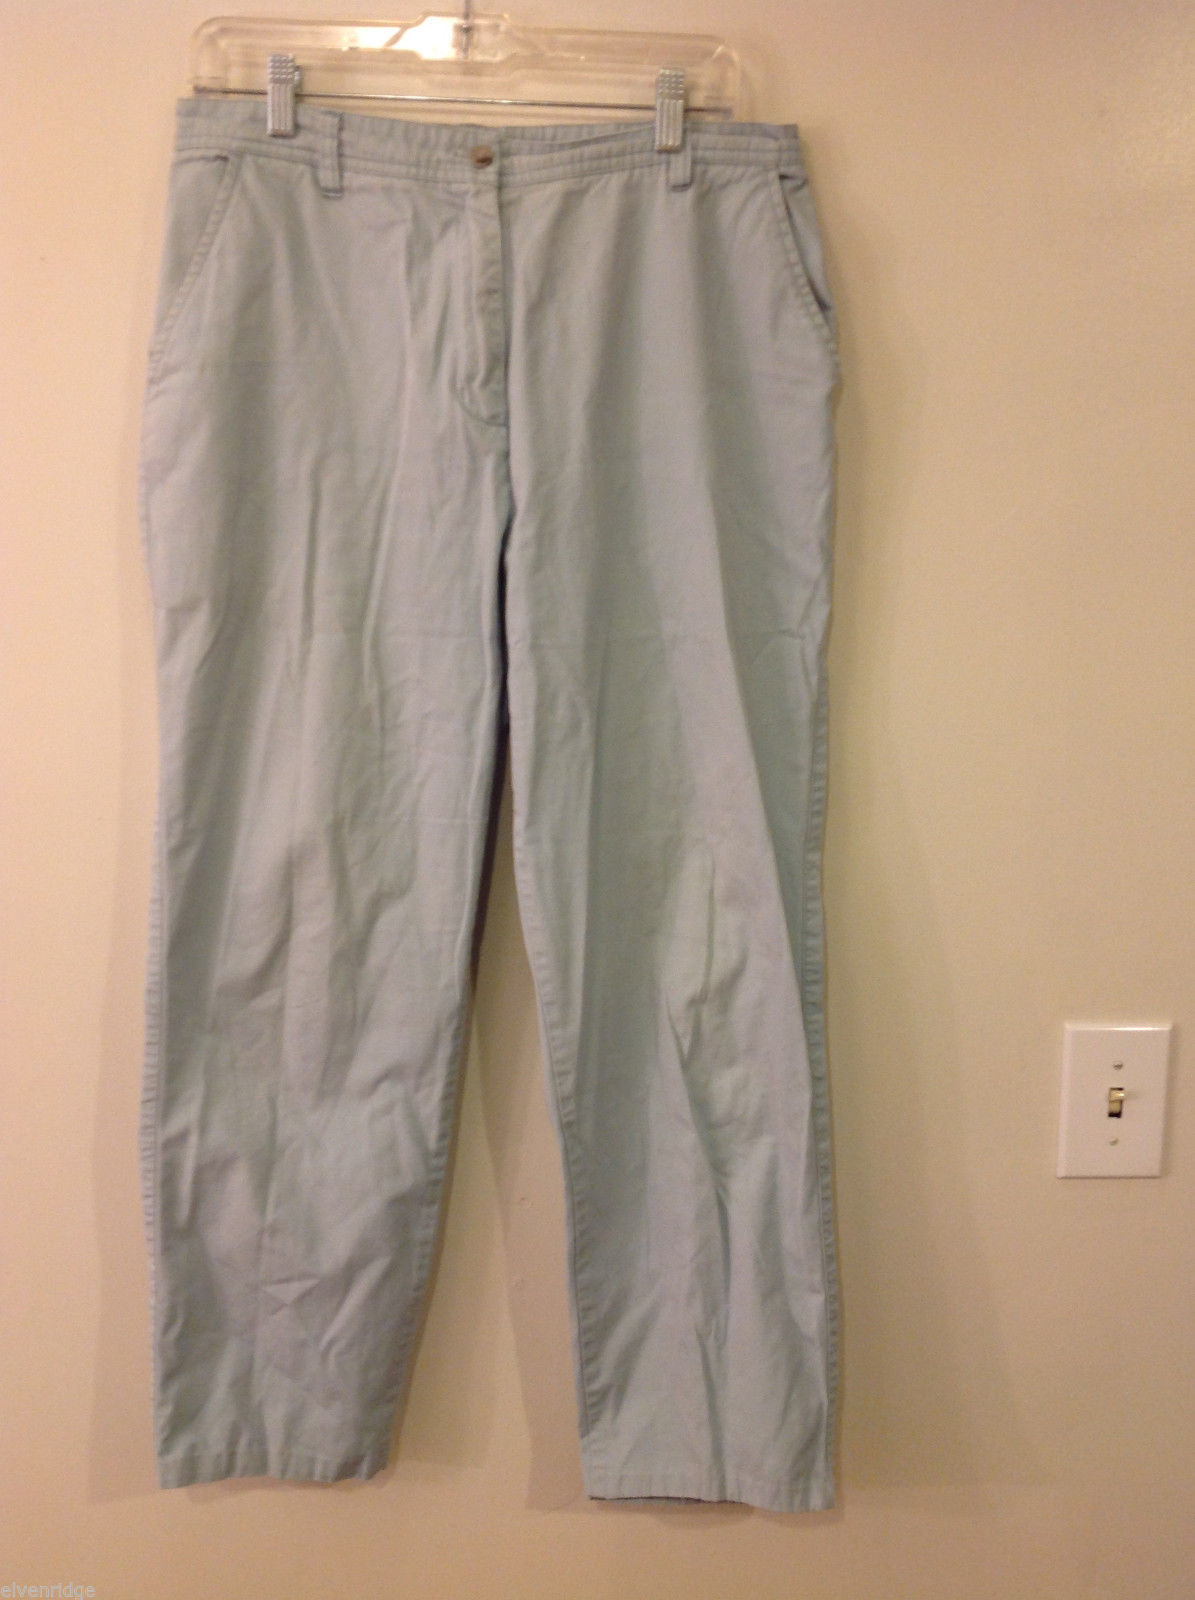 Woolrich Size 12 Womens' Pale Mint Green 100% Cotton Pants Trousers Slacks